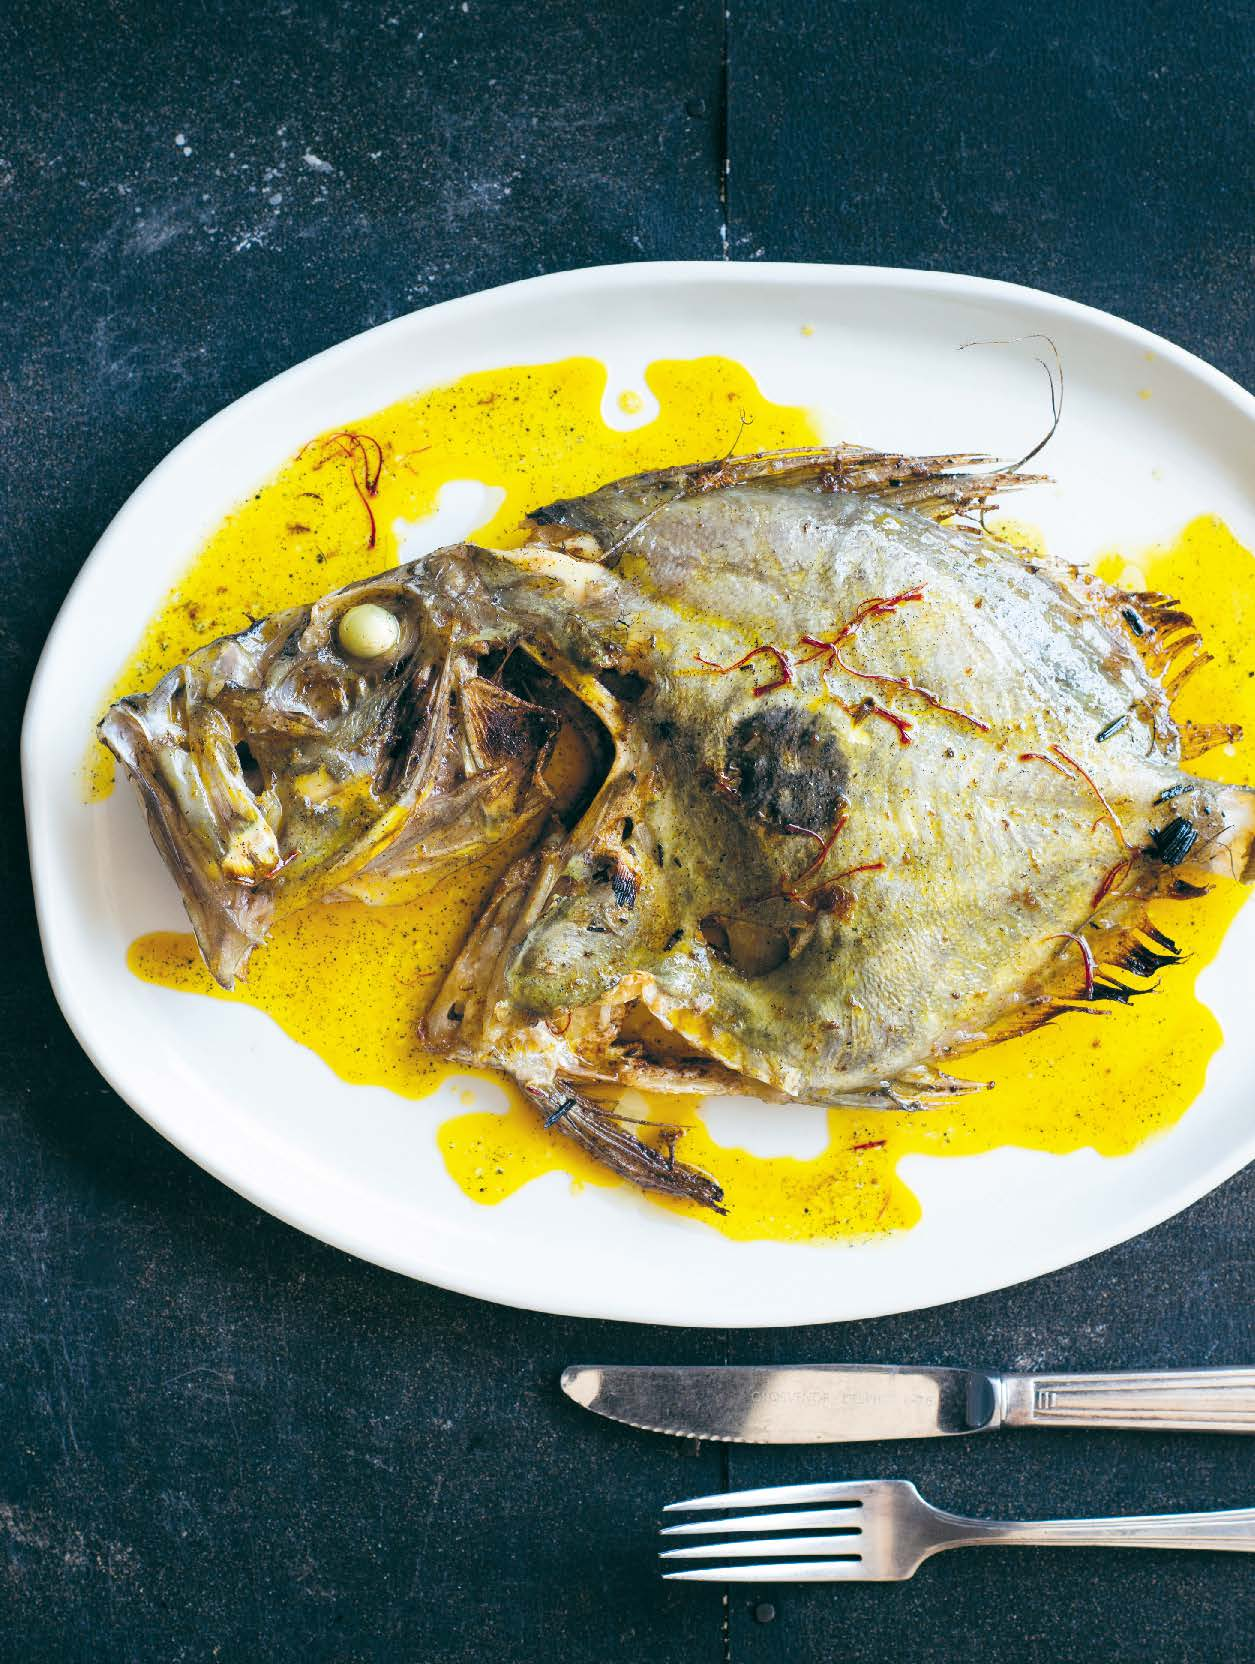 Roasted whole John Dory with vanilla and saffron